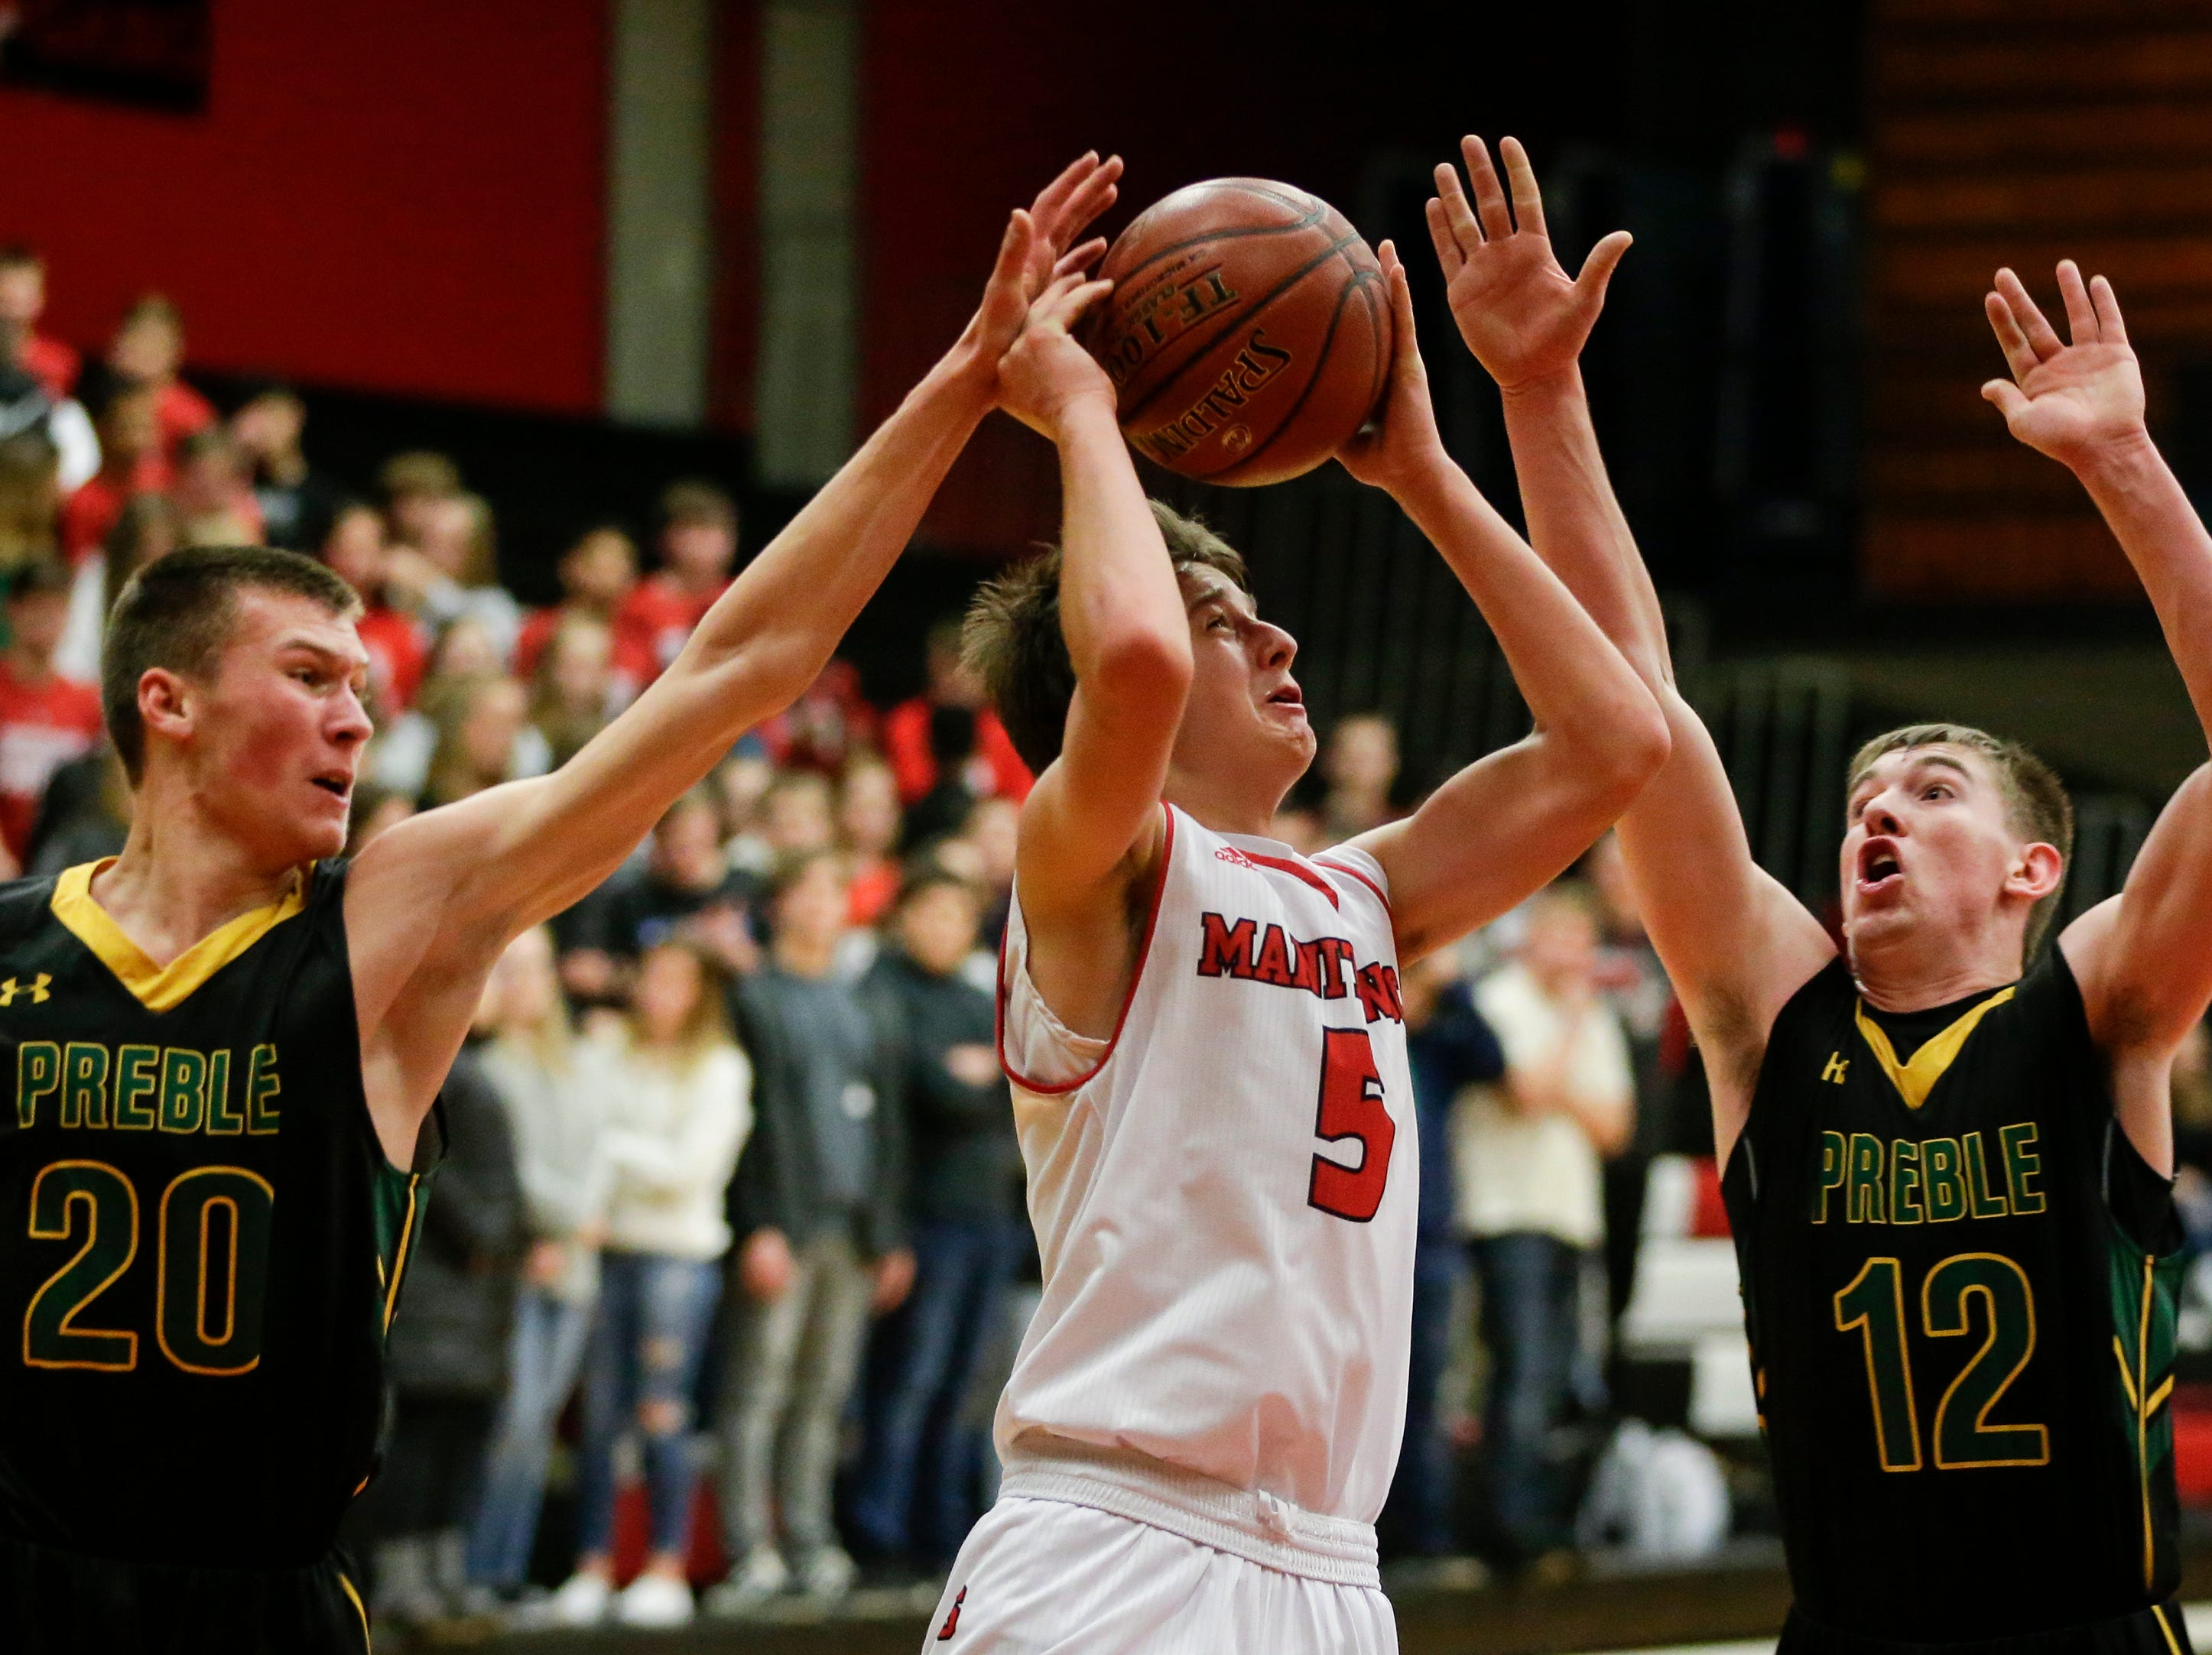 Manitowoc Lincoln's Josh Hoffman looks to shoot against Green Bay Preble during boys FRCC basketball at Manitowoc Lincoln High School Friday, December 21, 2018, in Manitowoc, Wis. Joshua Clark/USA TODAY NETWORK-Wisconsin